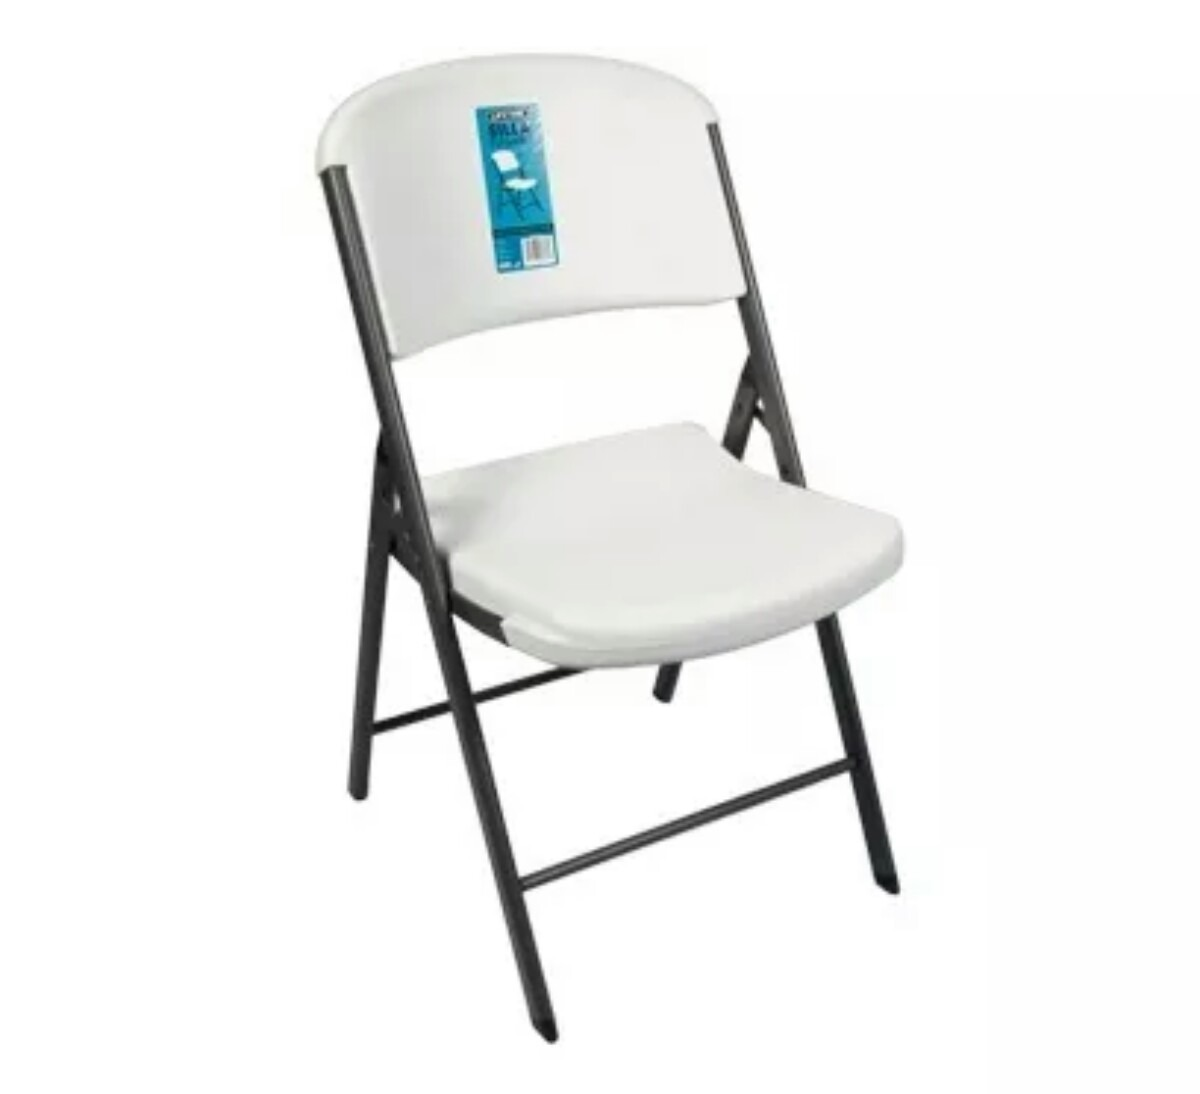 Silla plegable de plastico lifetime en mercado for Sillas acolchadas precio